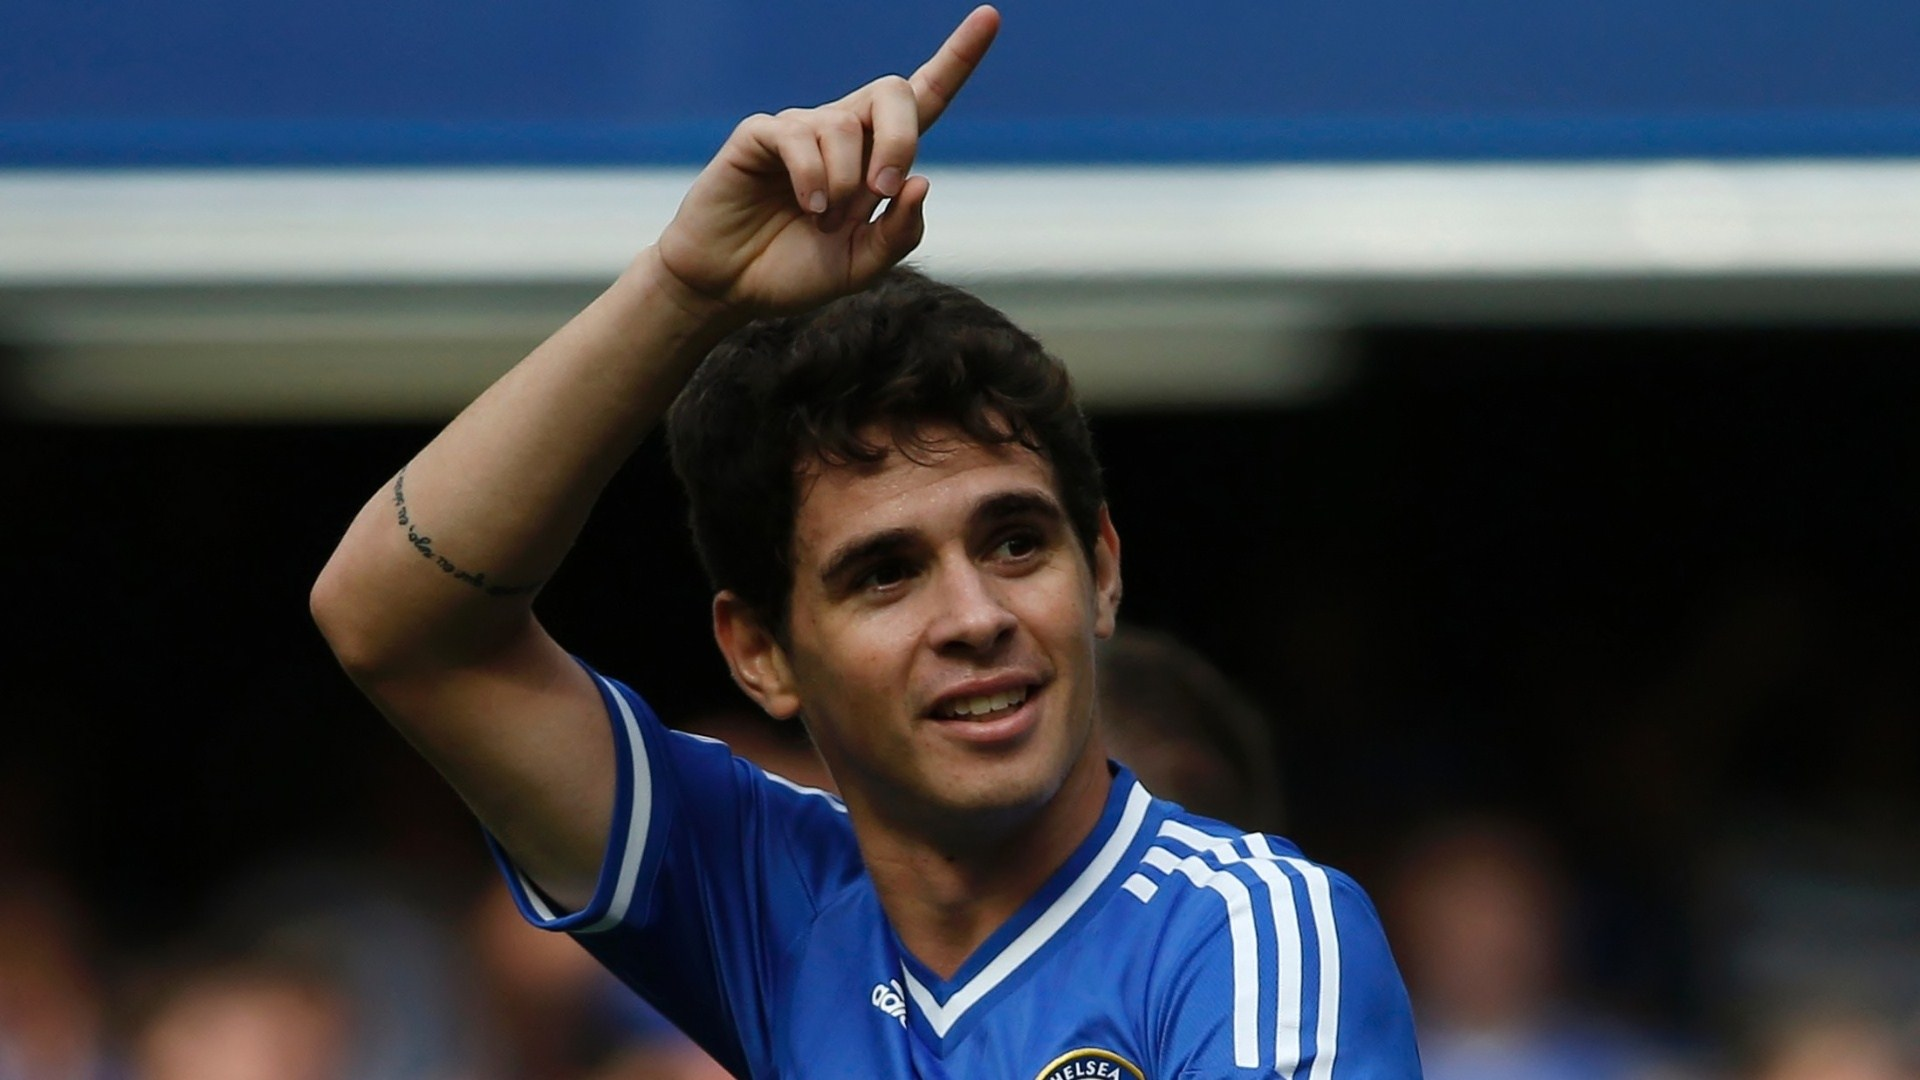 2 Oscar Dos Santos HD Wallpapers | Backgrounds - Wallpaper Abyss